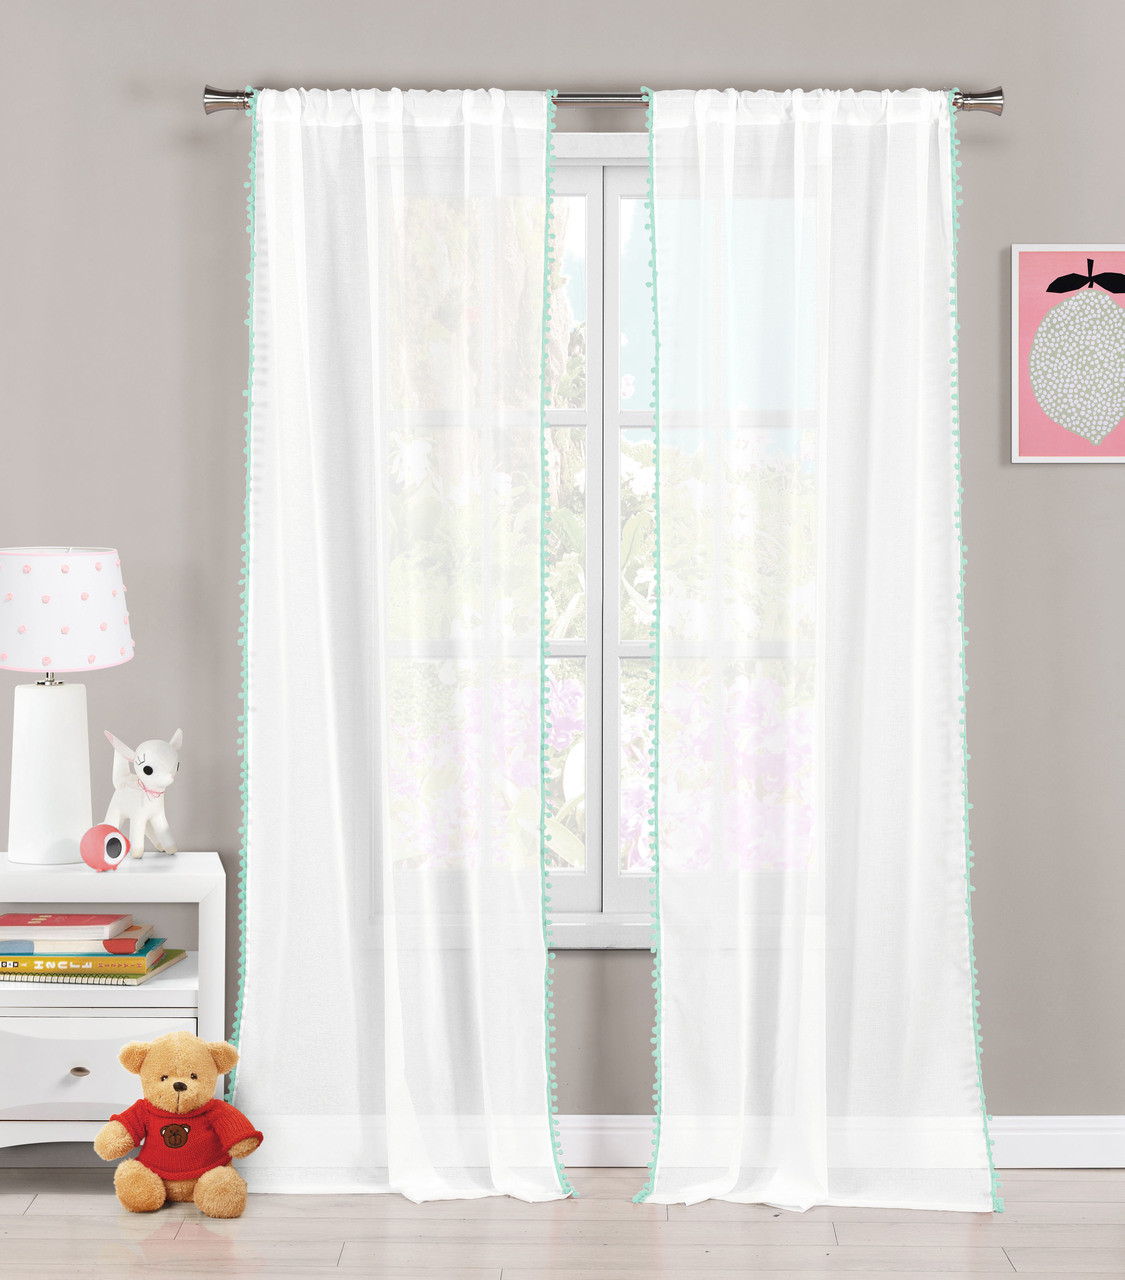 White with Sea Foam pom-poms 76x84 Set 2 Sheer Pole Top Window Curtain Panels